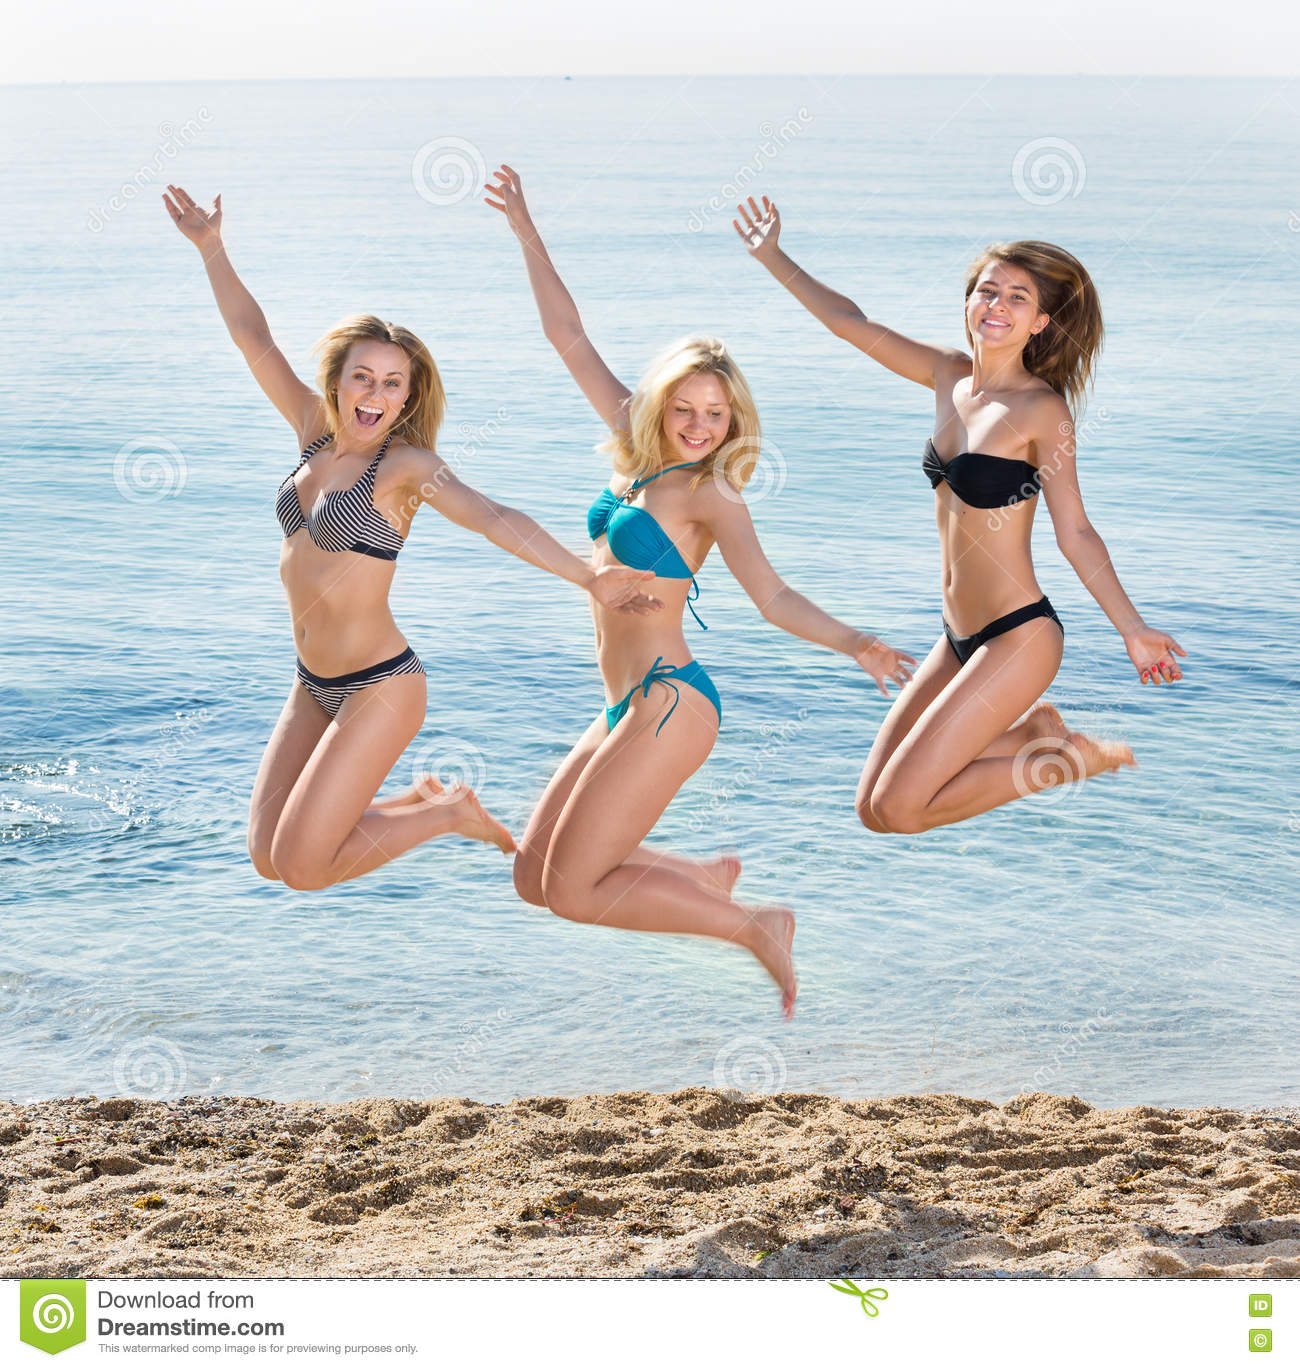 8d0cd00564c4b Portrait of three cheerful young women in swimsuits hopping together on  beach. Focus on left person